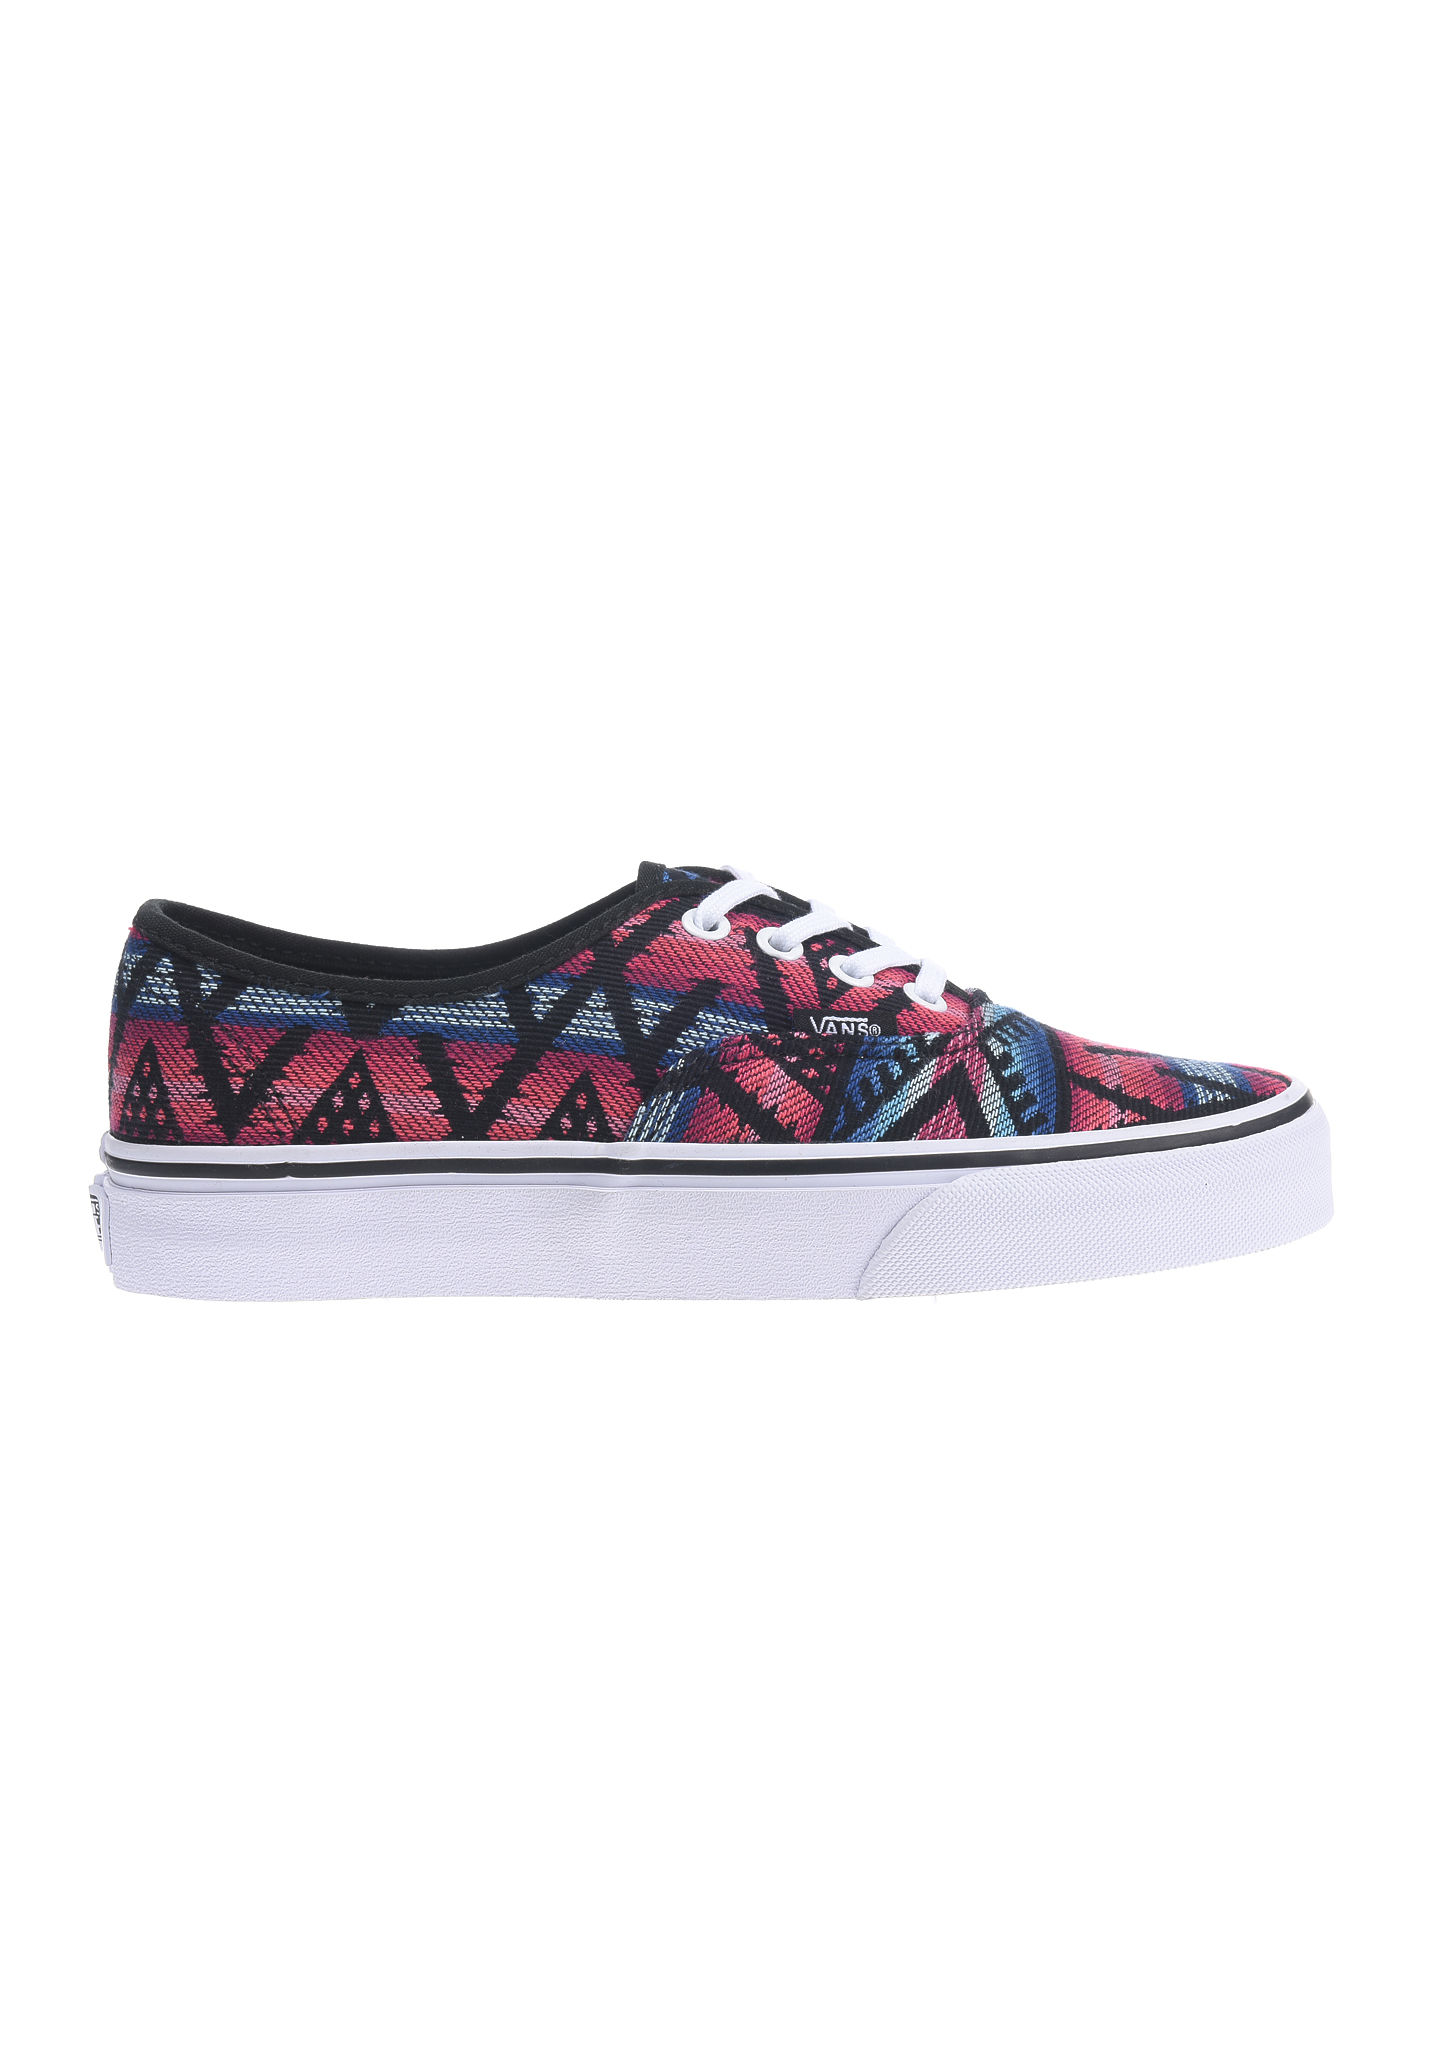 8684187359ae32 Vans Authentic - Sneakers - Multicolor - Planet Sports